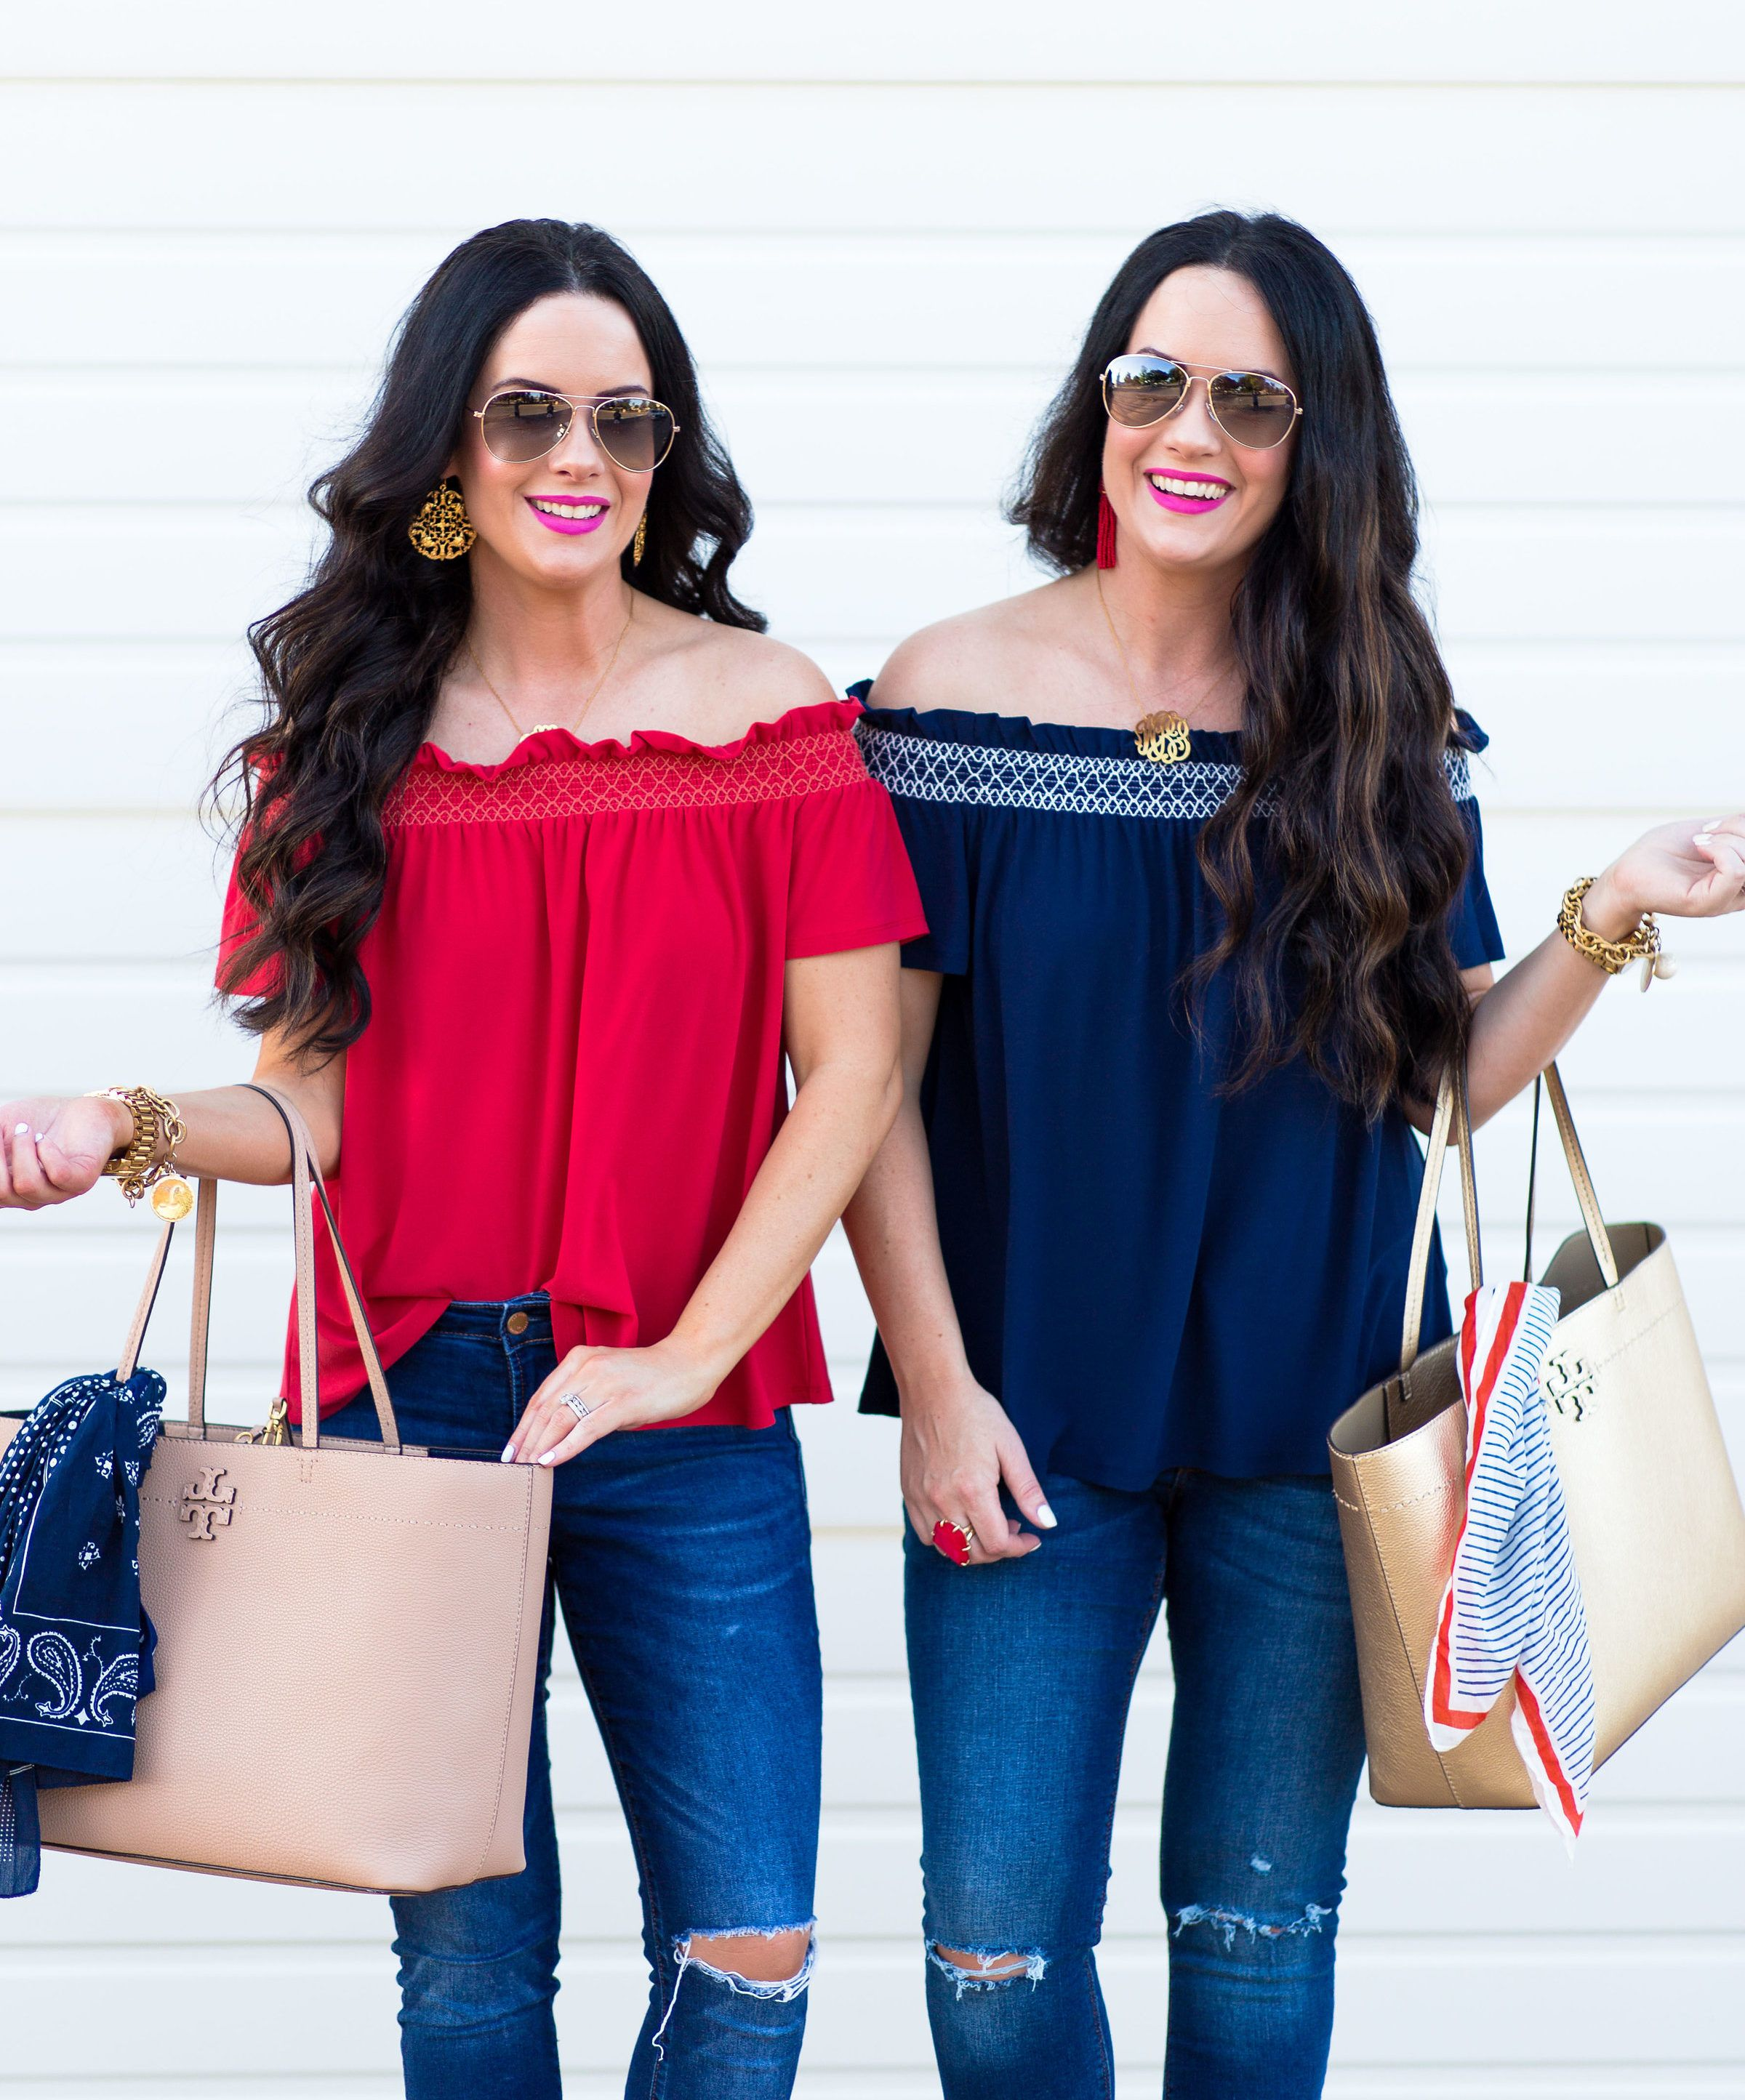 Sales For 4th Of July Outfit Ideas Thedoubletakegirls Com Blog